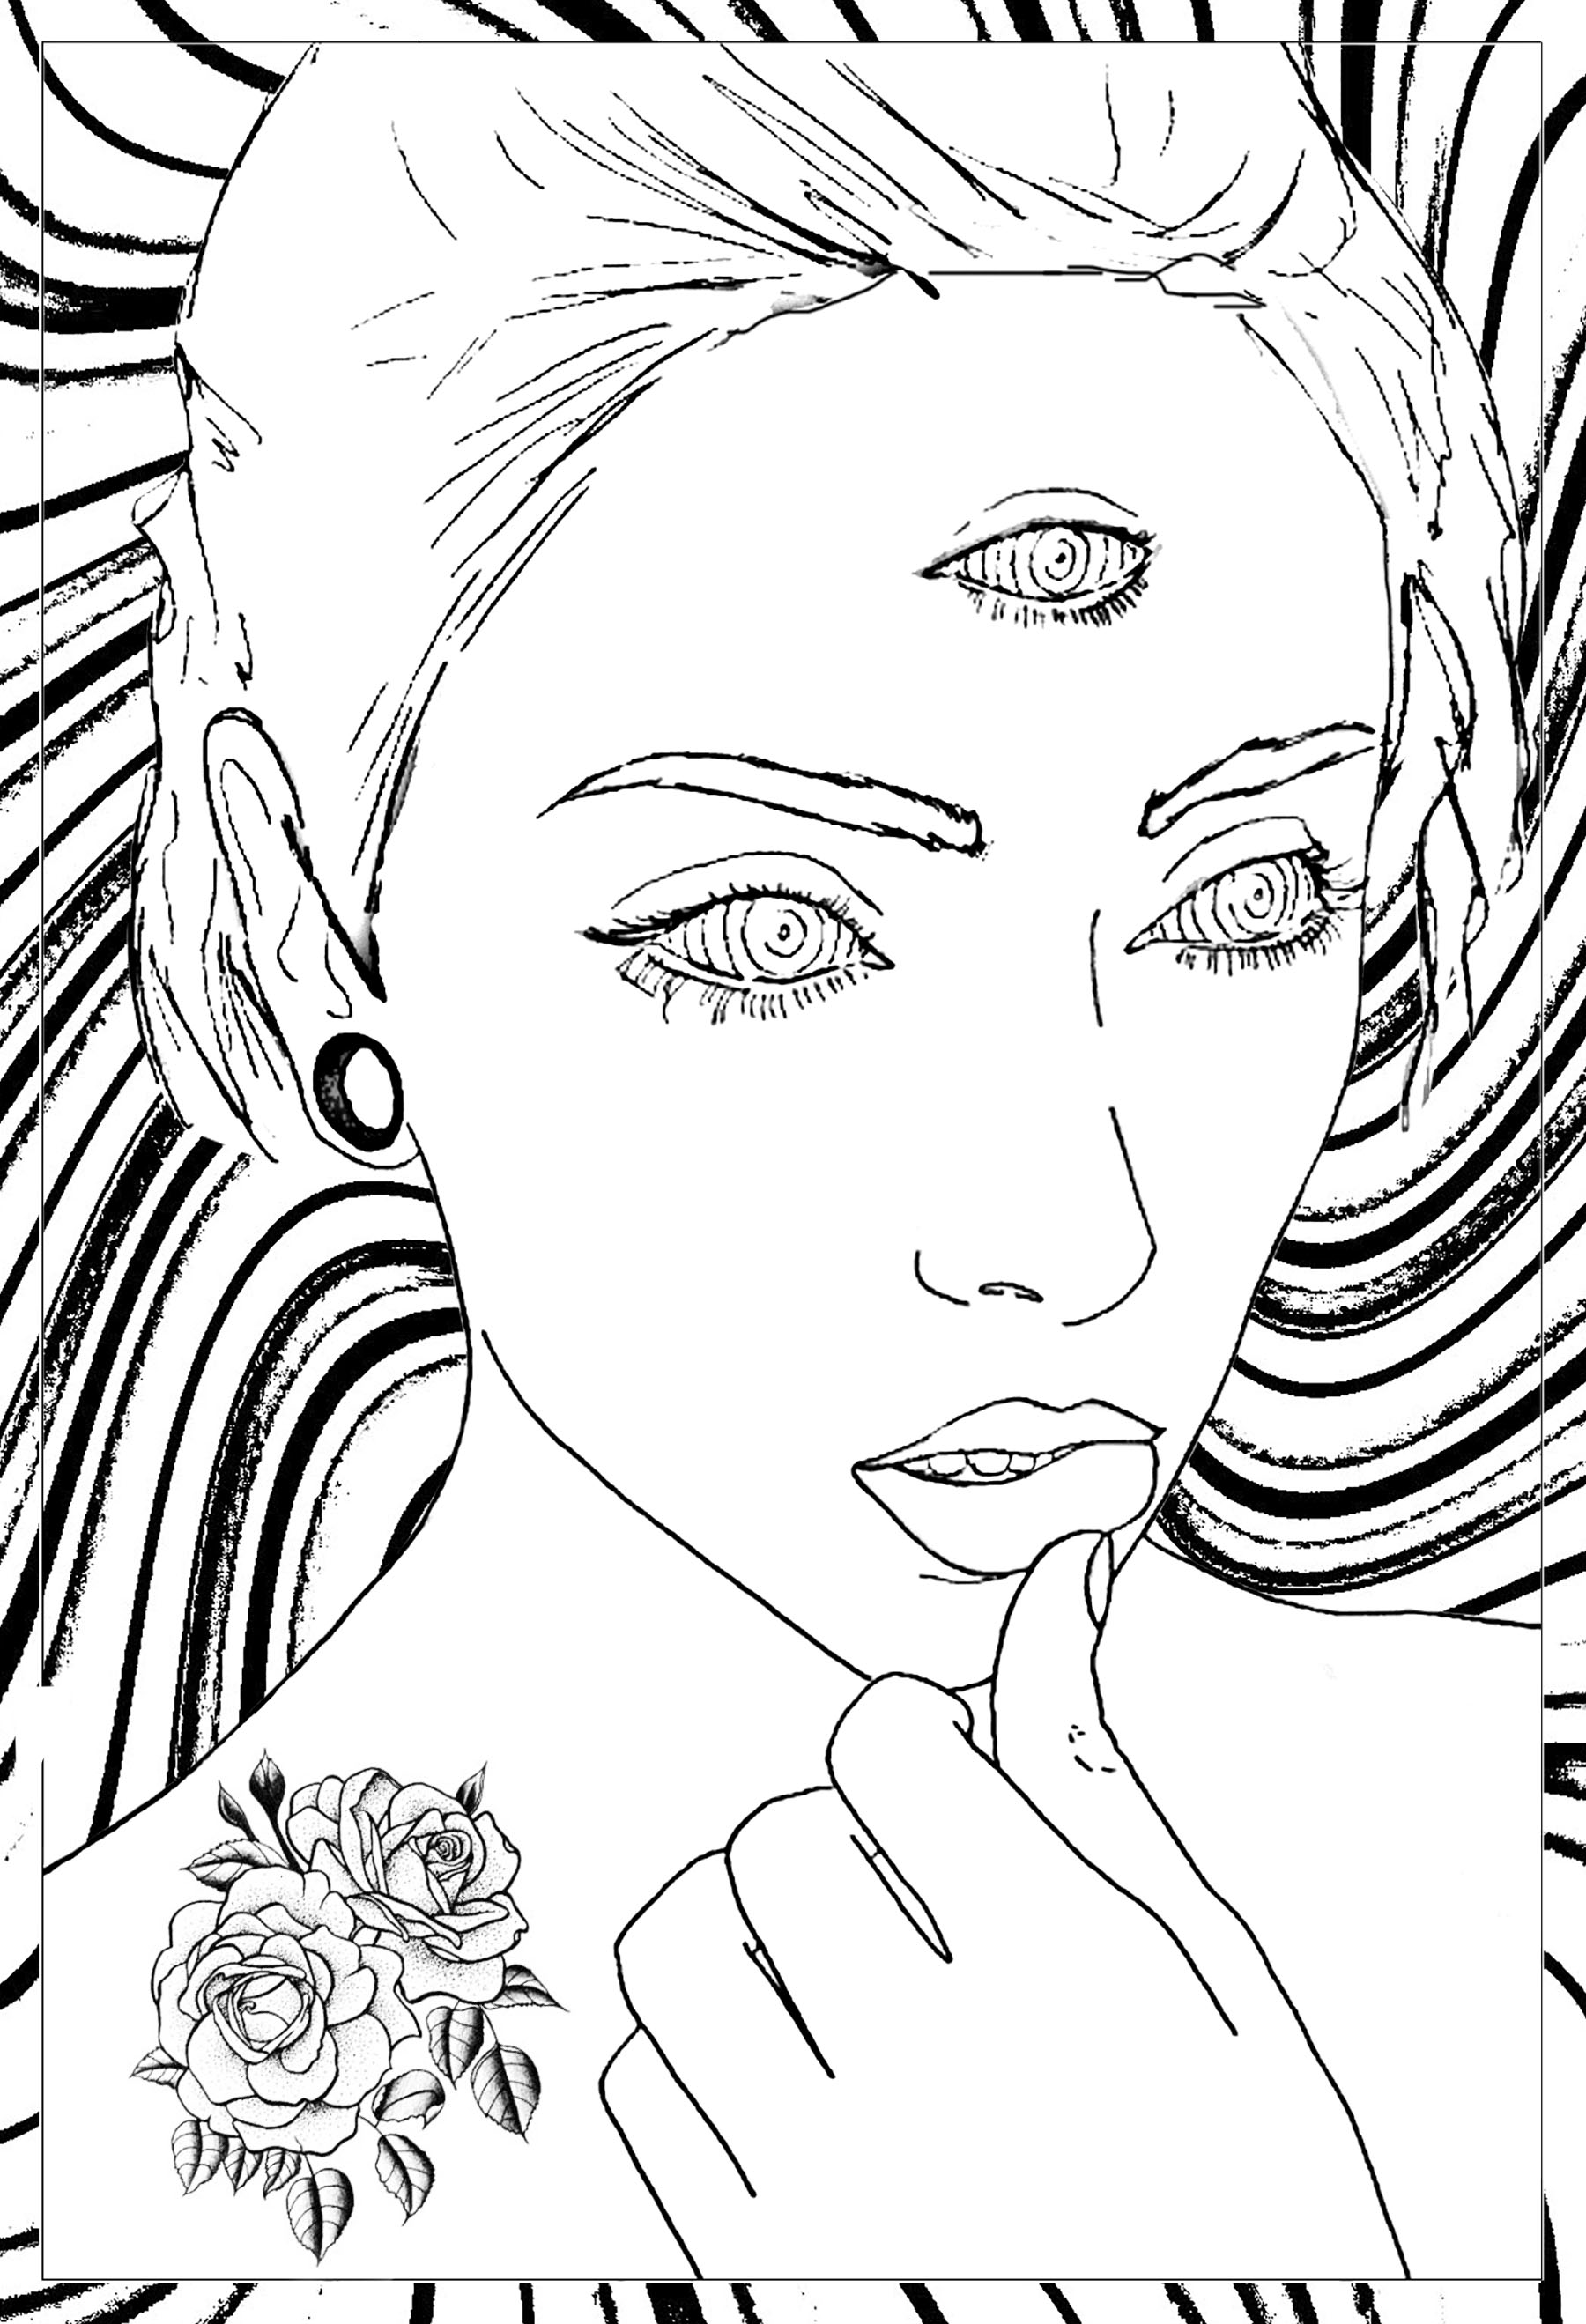 Hippie Coloring Pages At Getcolorings